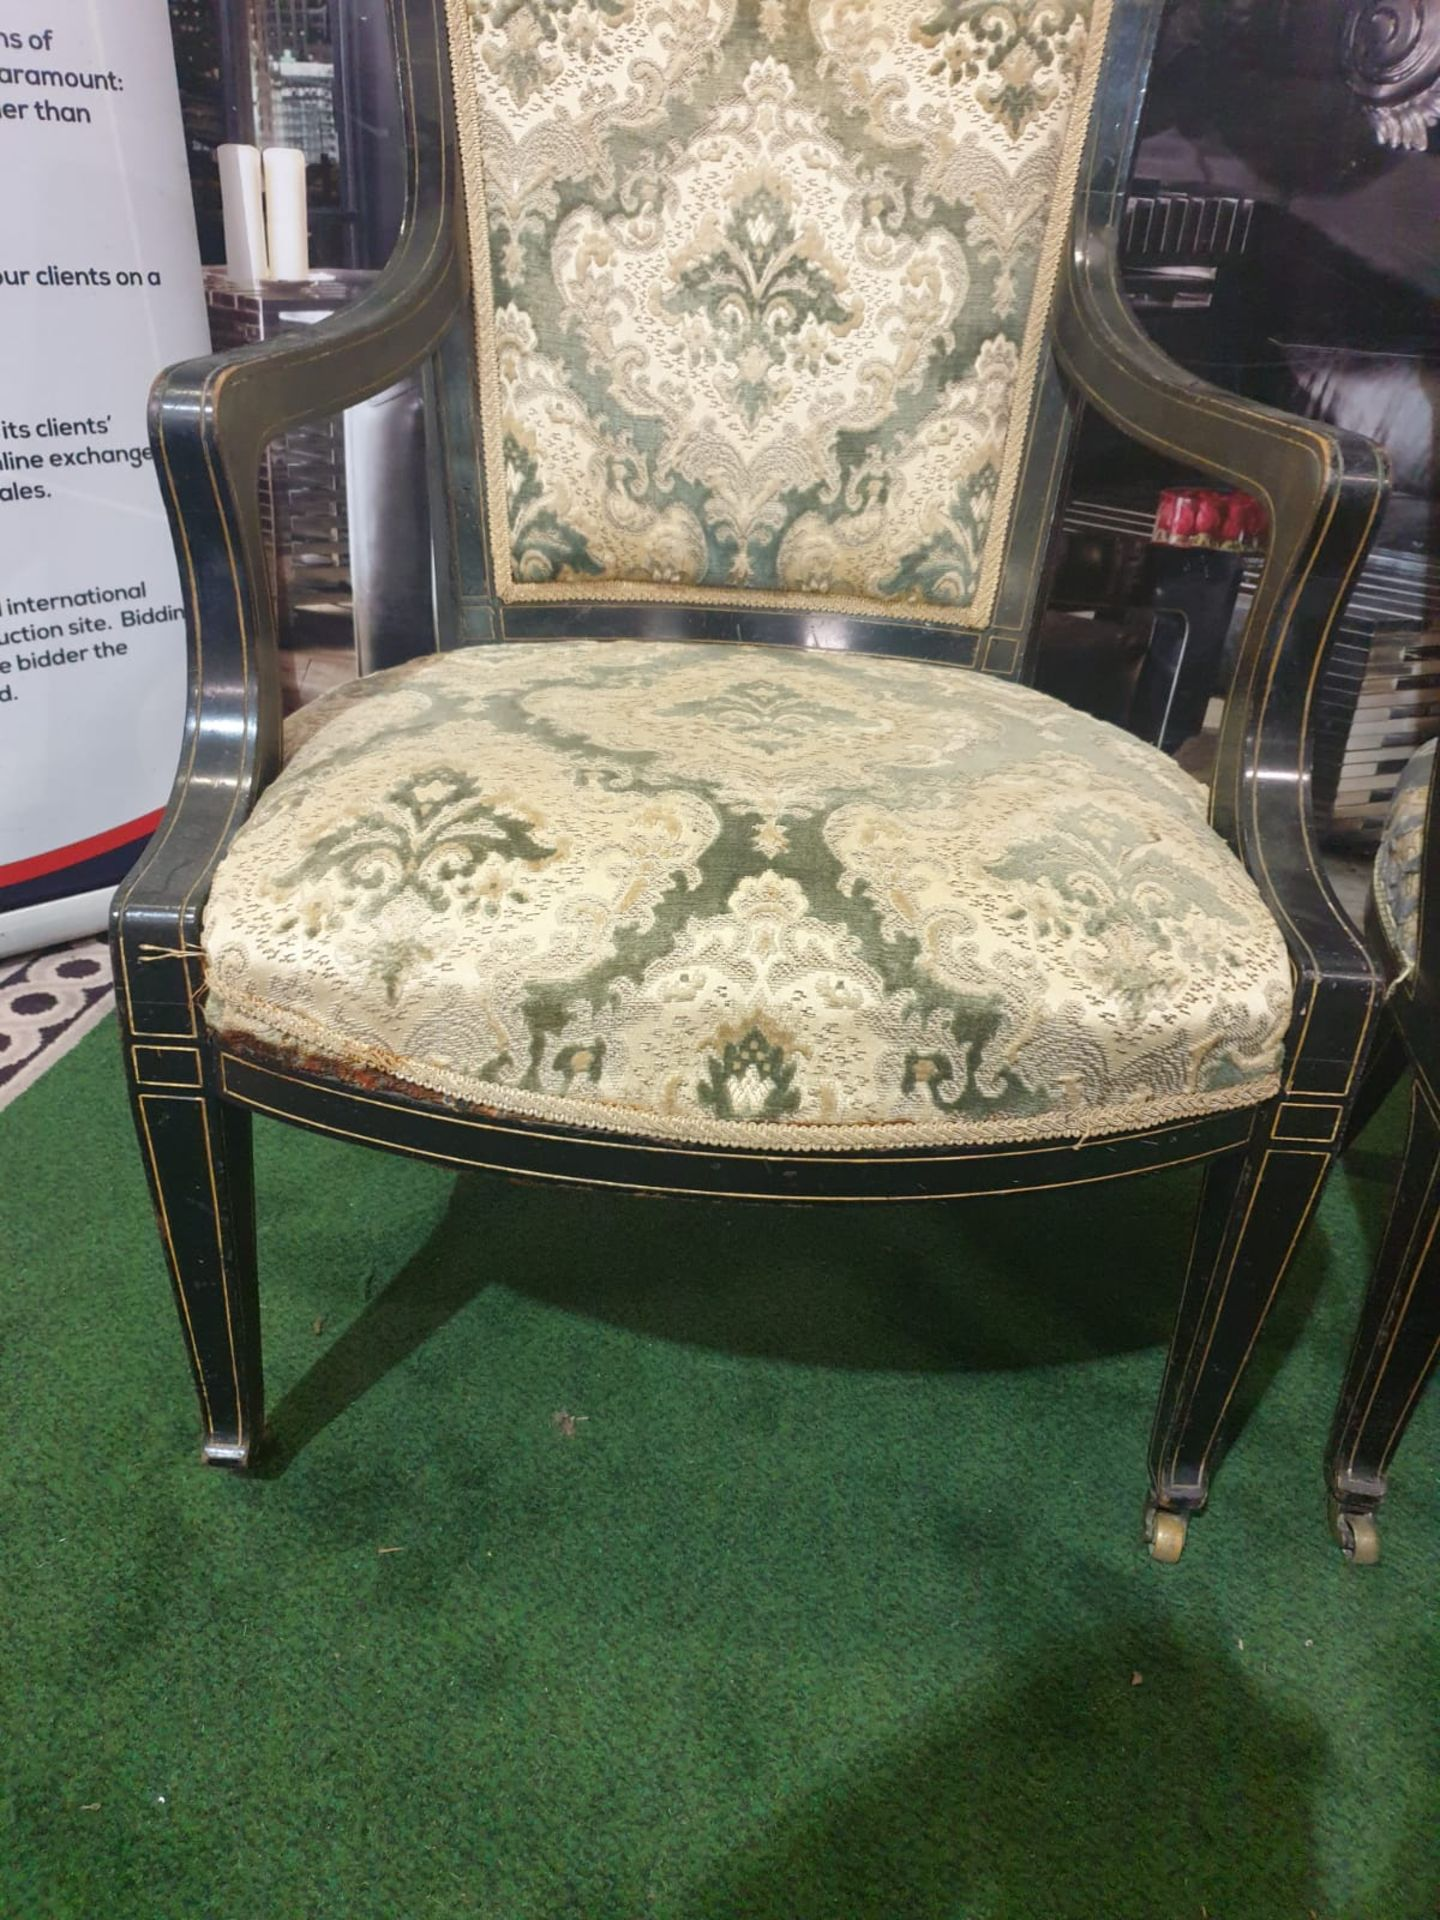 A set of 3 x George III/Neoclassical Style Carver Chairs. Most likely produced during the - Image 2 of 3